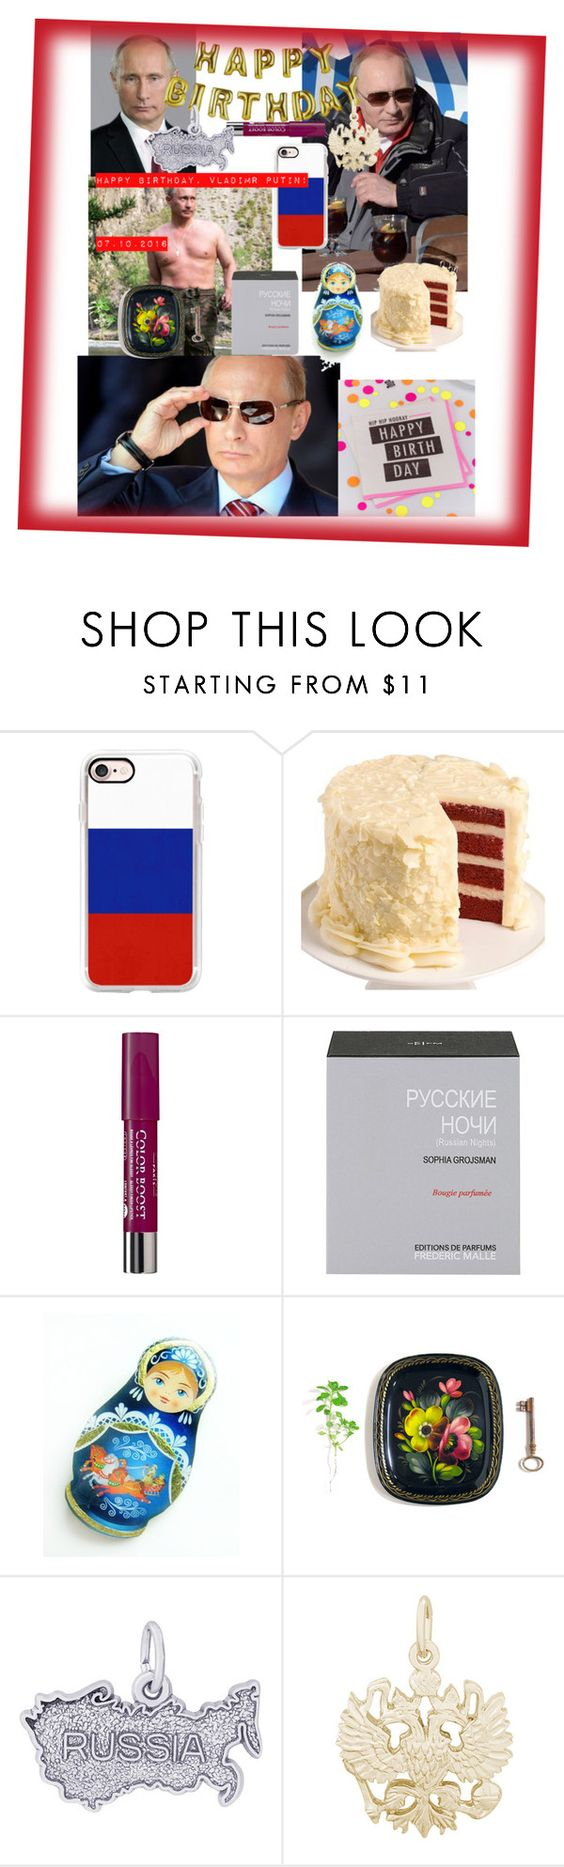 """""""С Днём рождения, Владимир Владимирович!🎂💗👏🏻"""" by jesse-je ❤ liked on Polyvore featuring Talking Tables, Casetify, We Take the Cake, Bourjois, Frédéric Malle, Rembrandt Charms and Ginger Ray"""